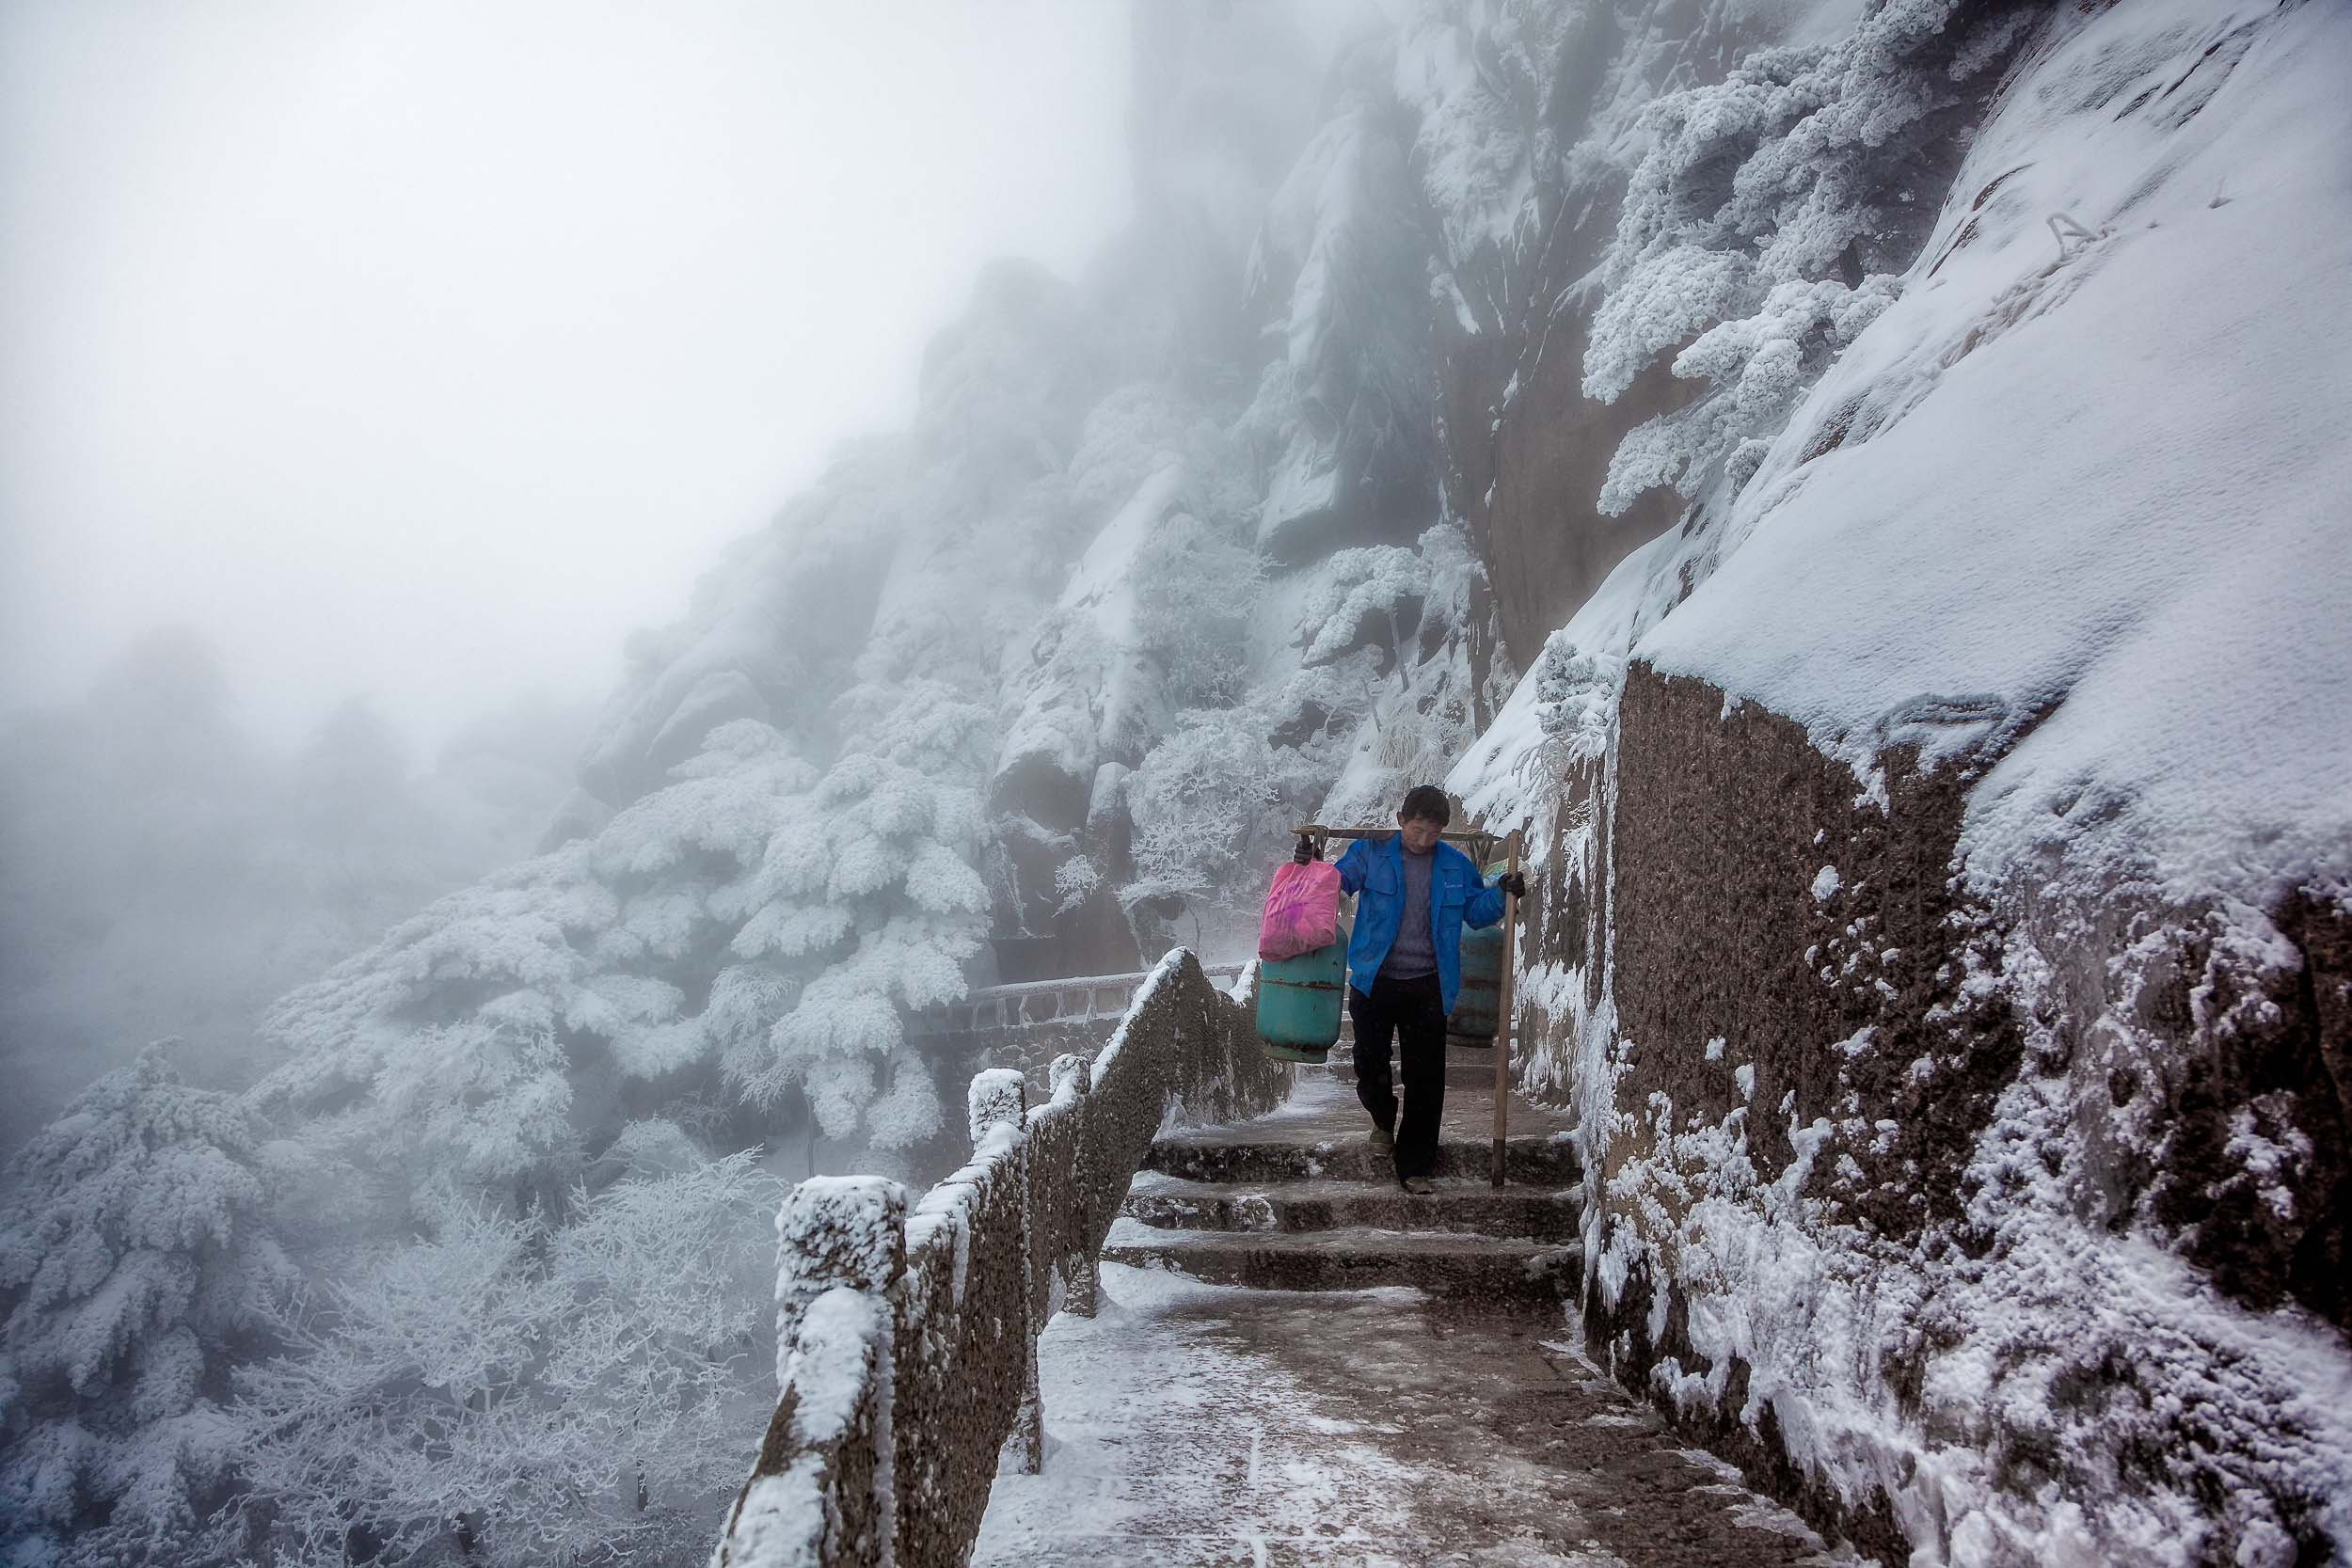 A    porter   , loaded with goods, walks a windy and exposed path on    Huangshan    (i.e., Yellow Mountain) in    China   .